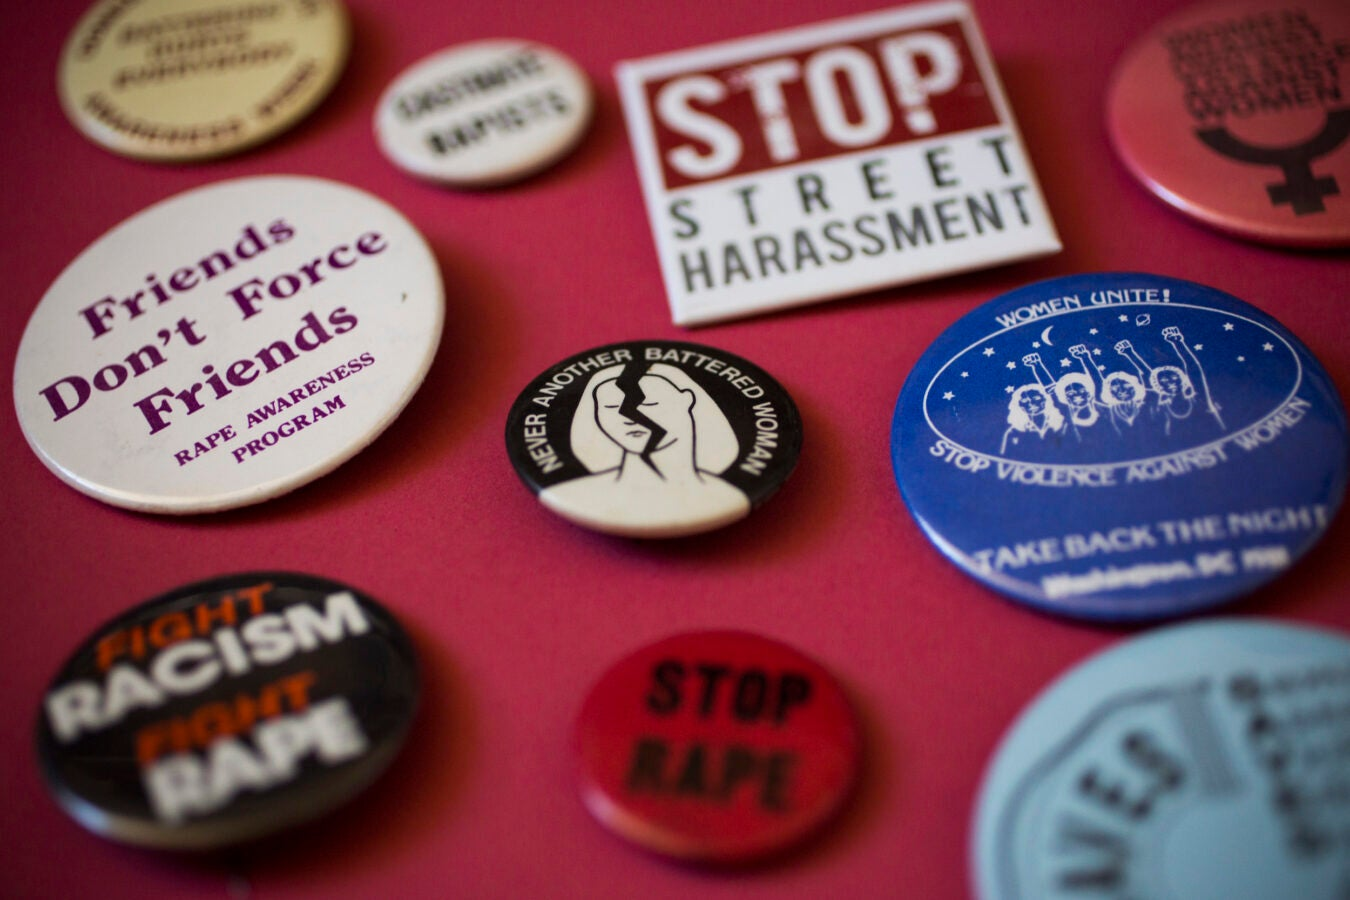 Stop Violence Against Women buttons.